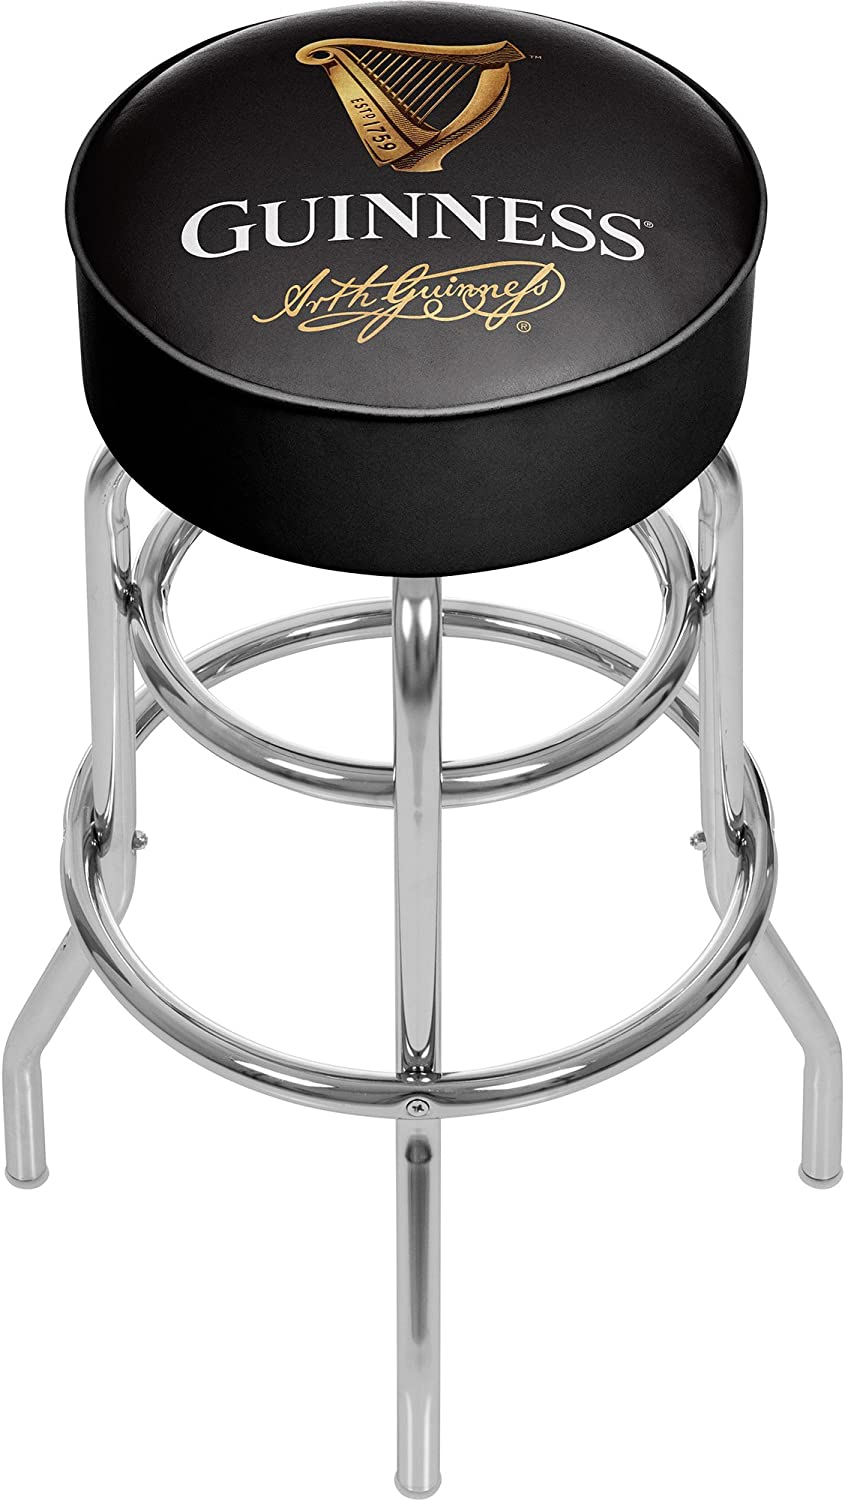 Trademark Gameroom Guinness Chrome Bar Stool with Swivel - Signature